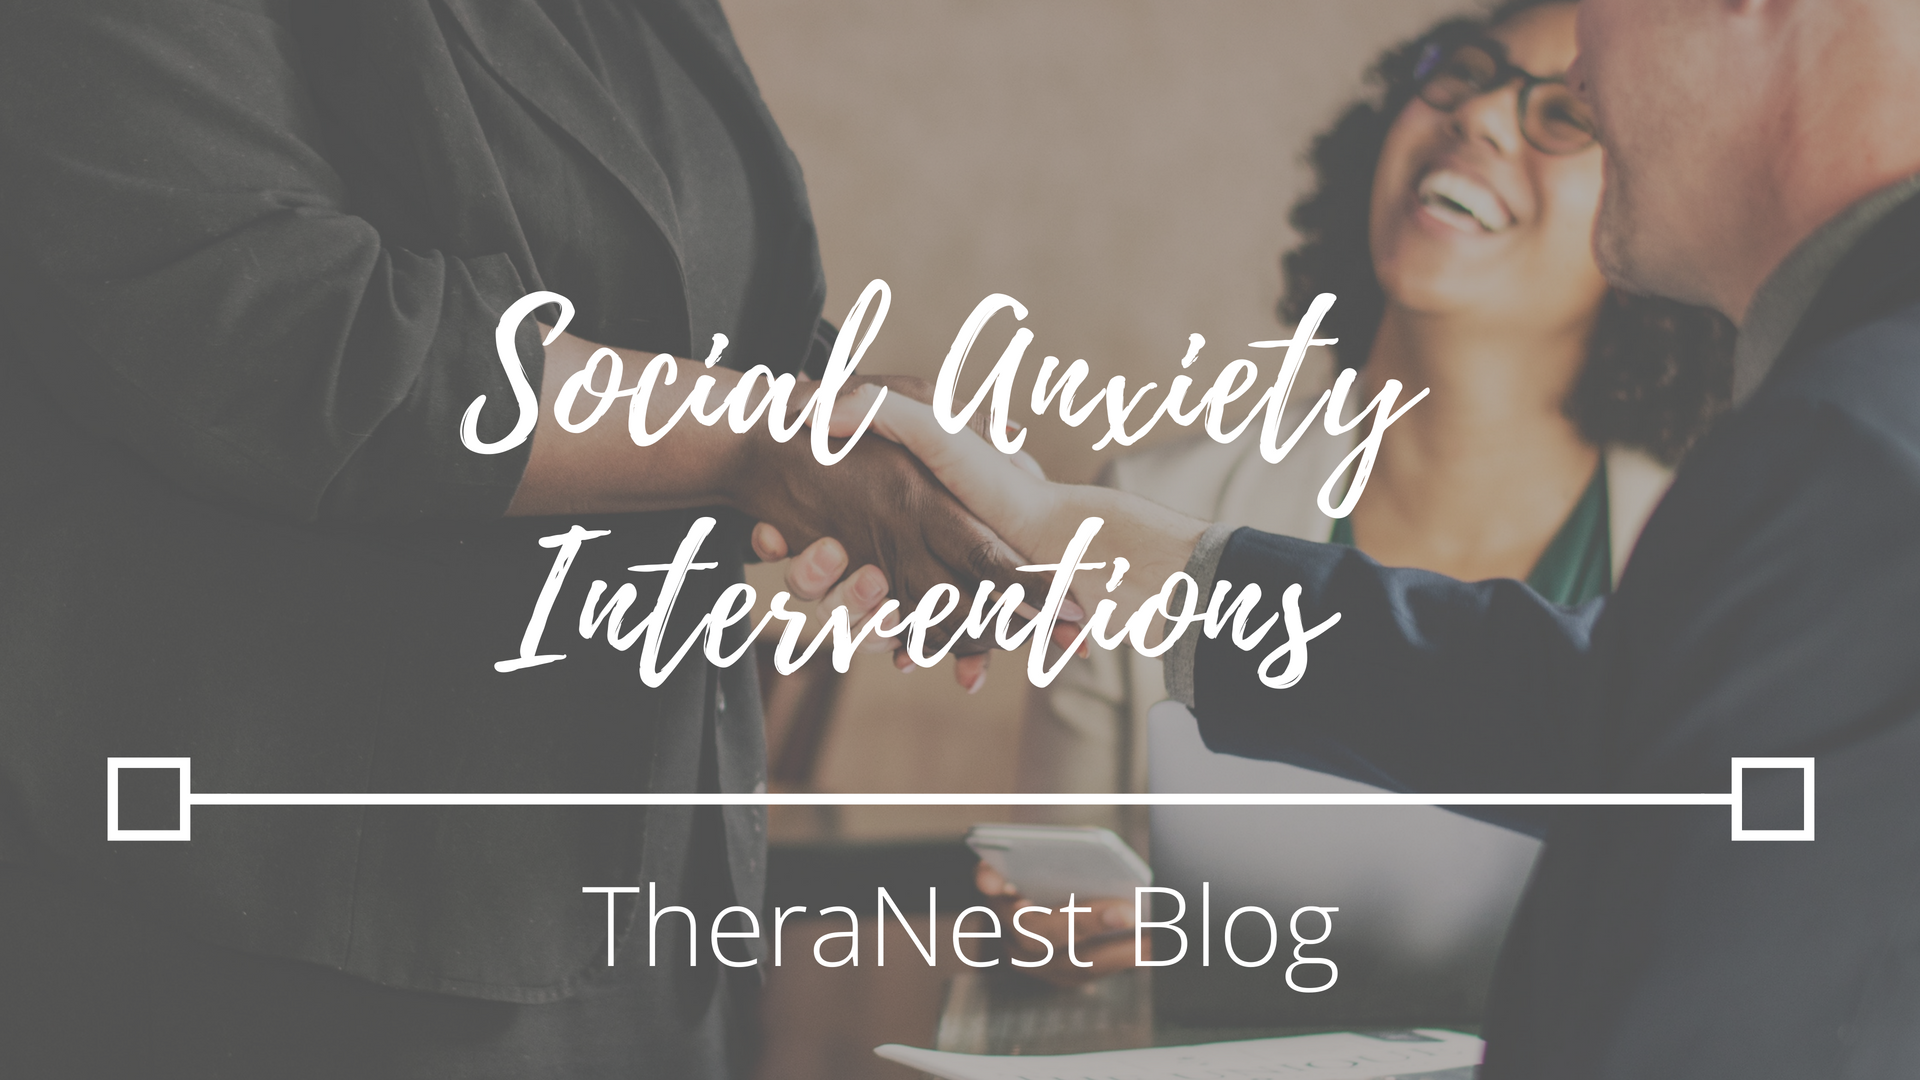 Social Anxiety Interventions - TheraNest Blog